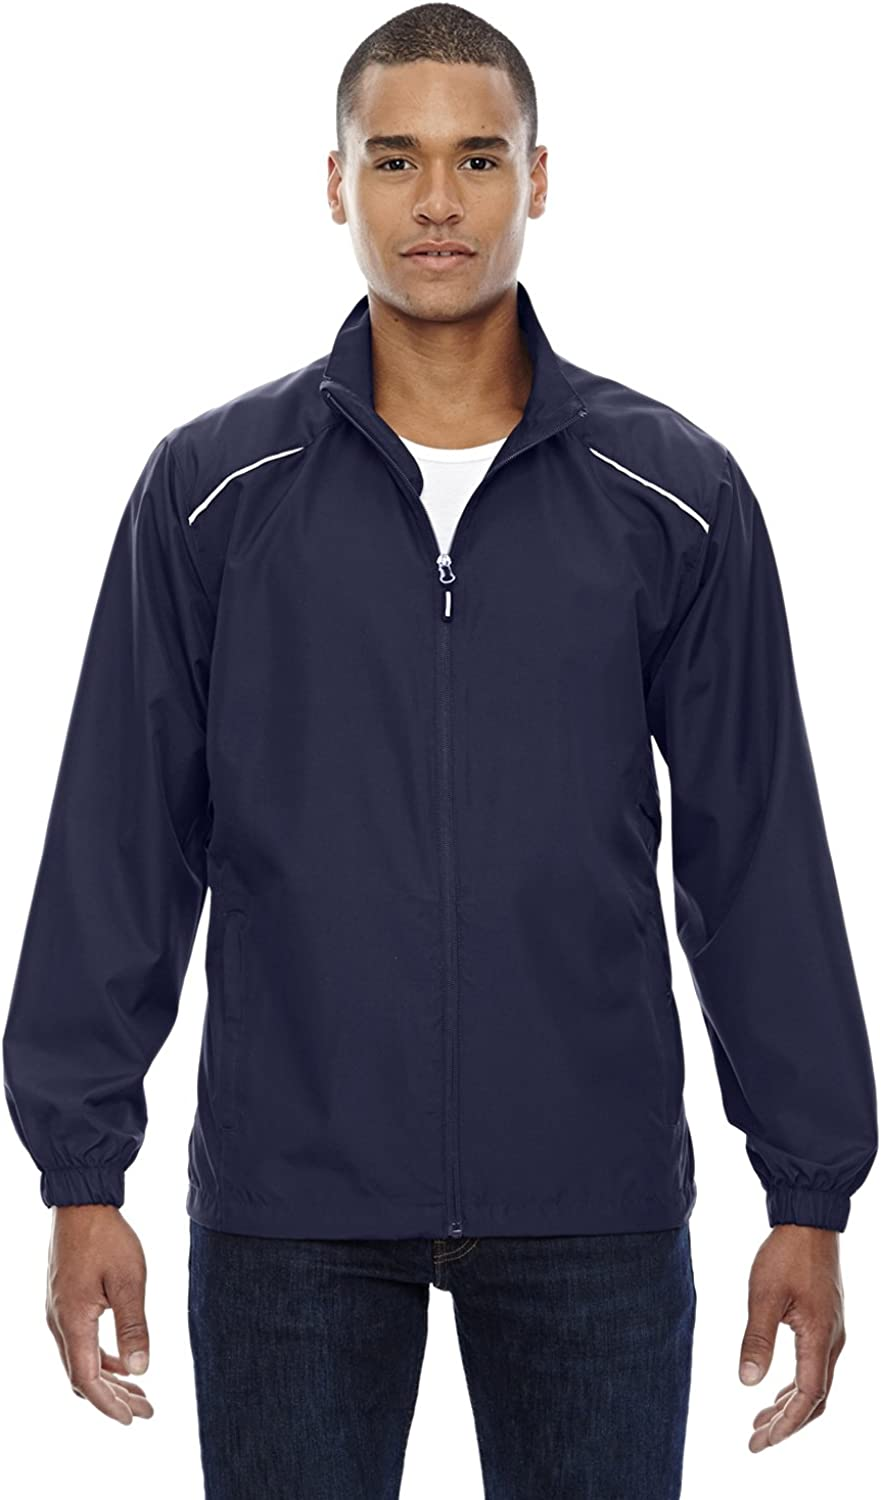 Ash City Mens Motivate Lightweight Jacket